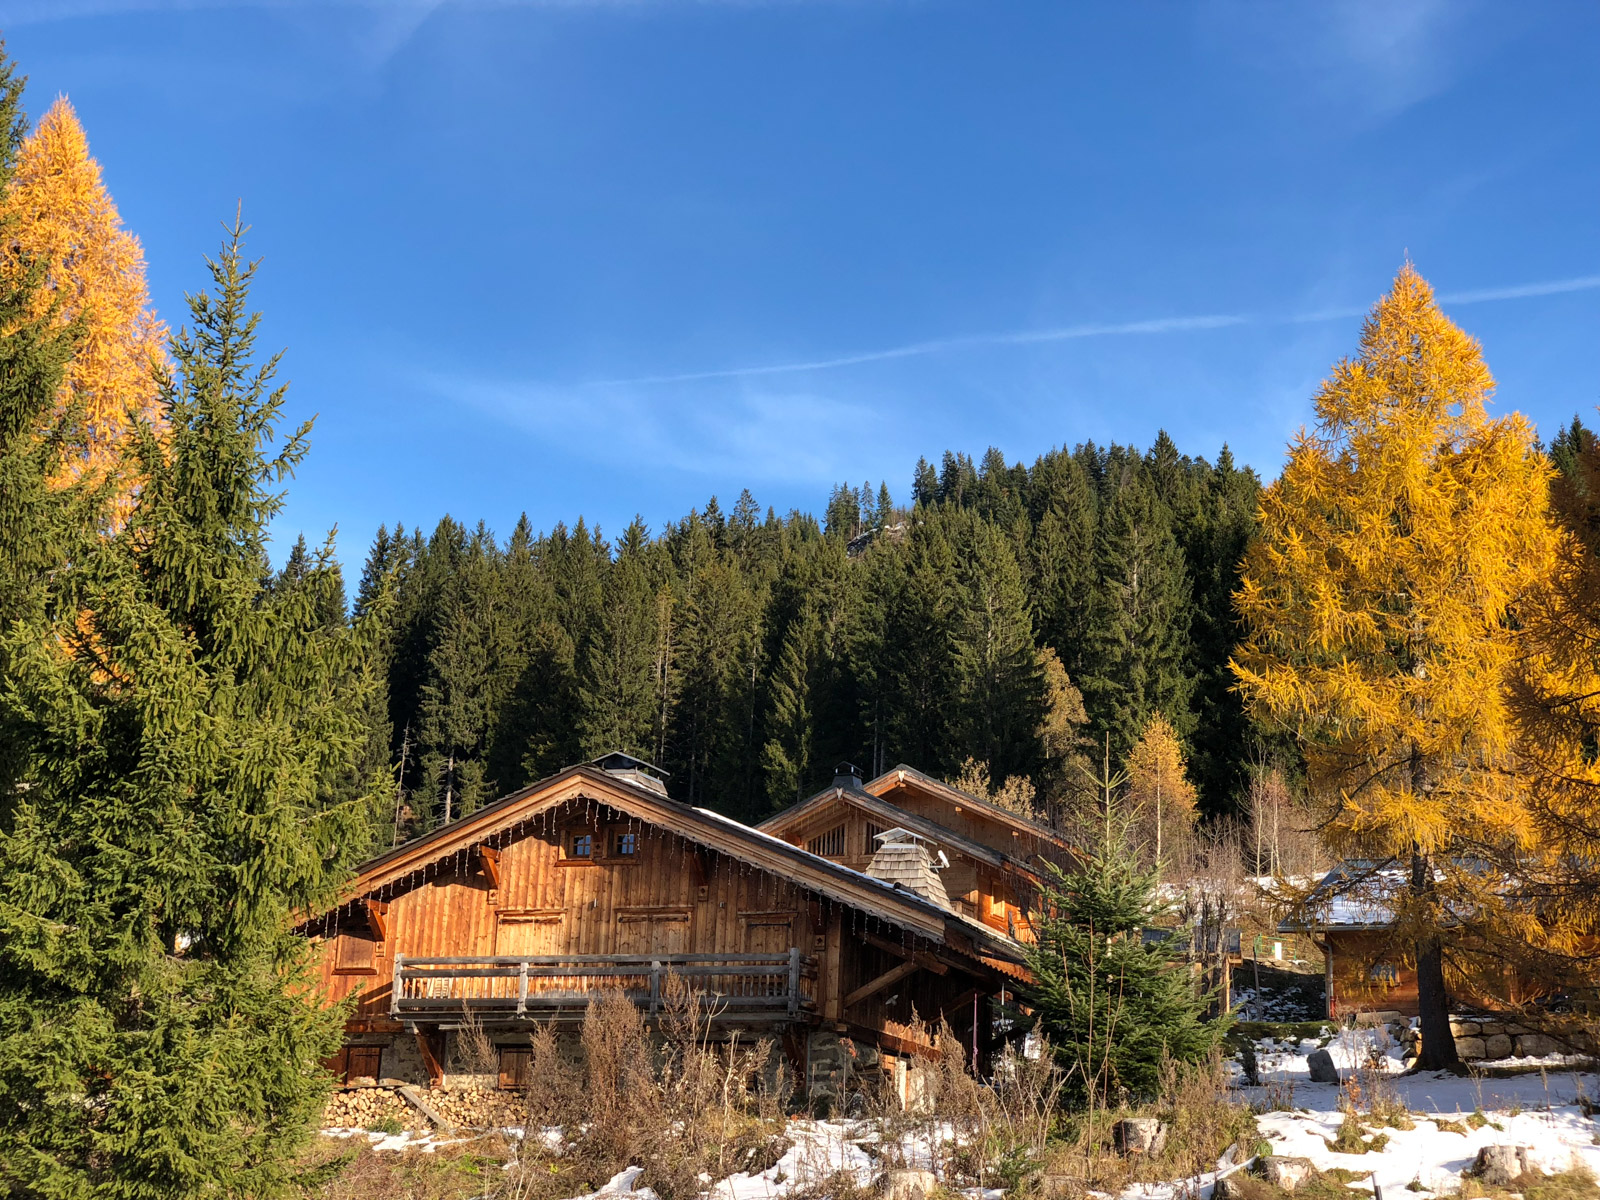 Chalet aux carroz d'arâches - iphone X